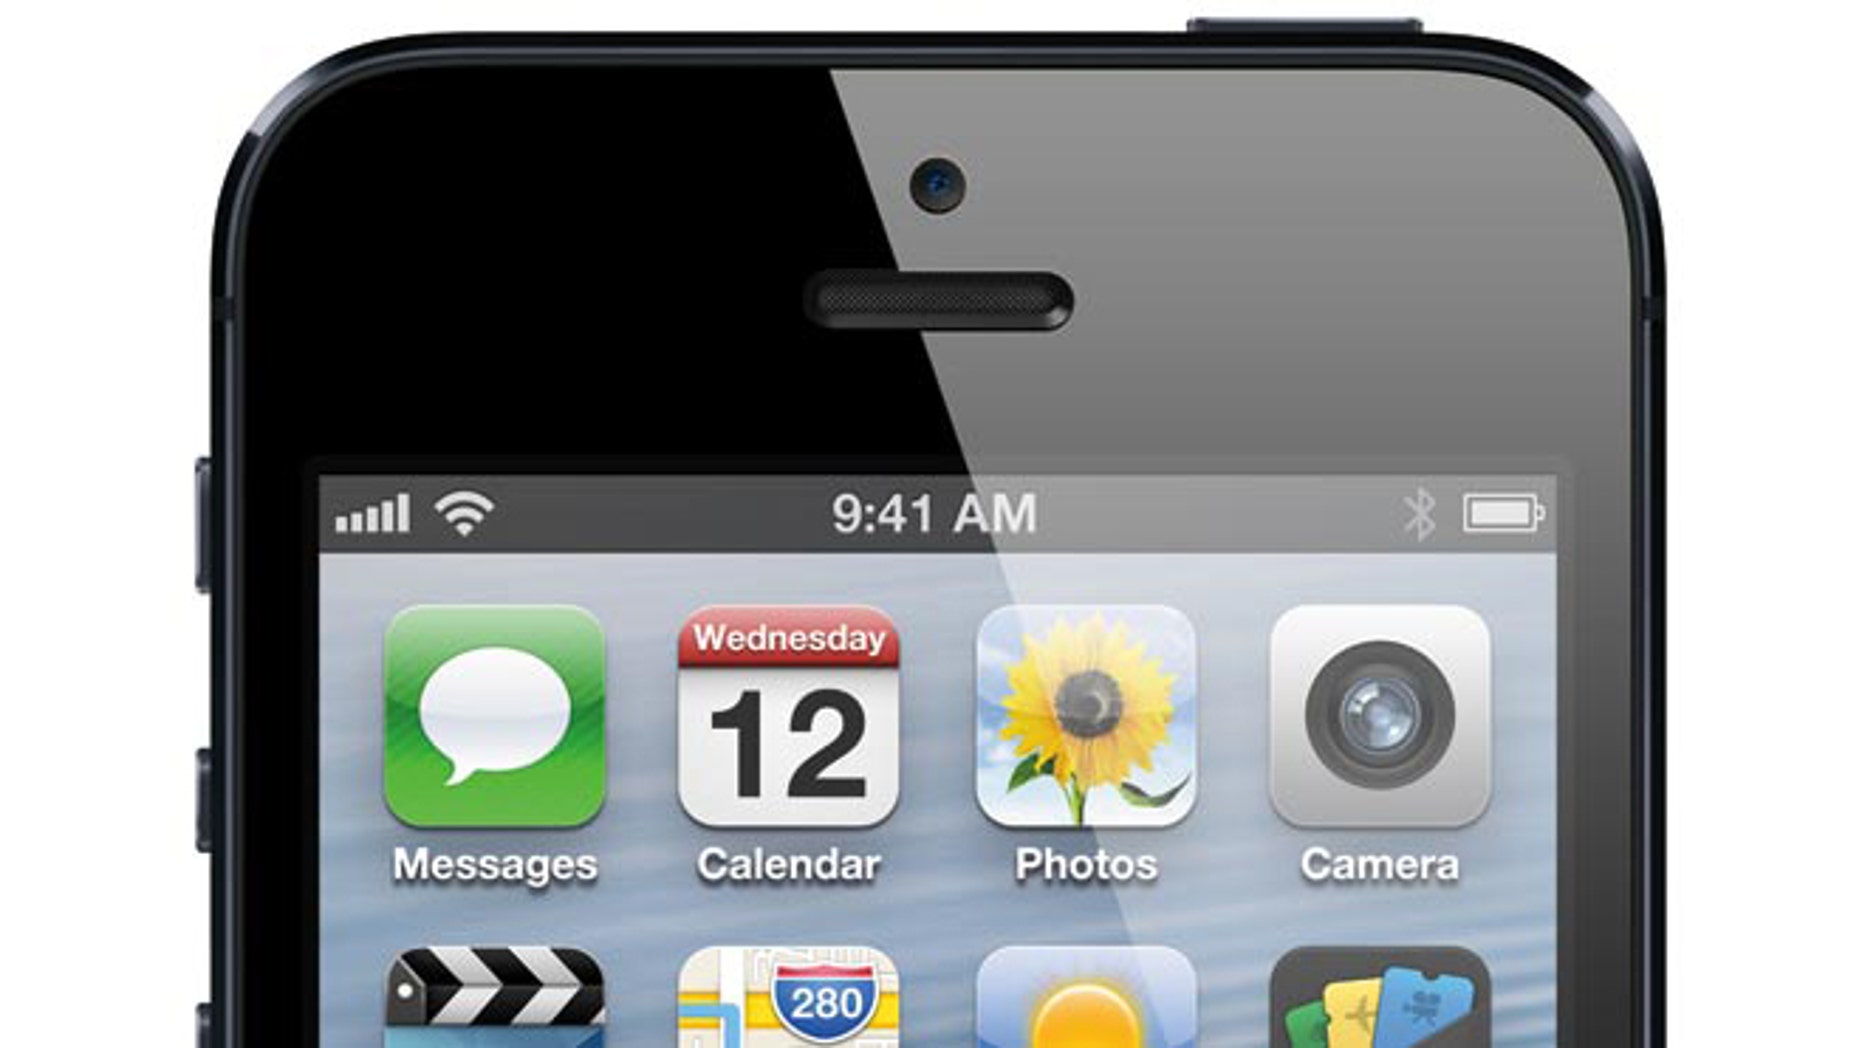 The Apple iPhone 5, the lastest smartphone from the tech giant.